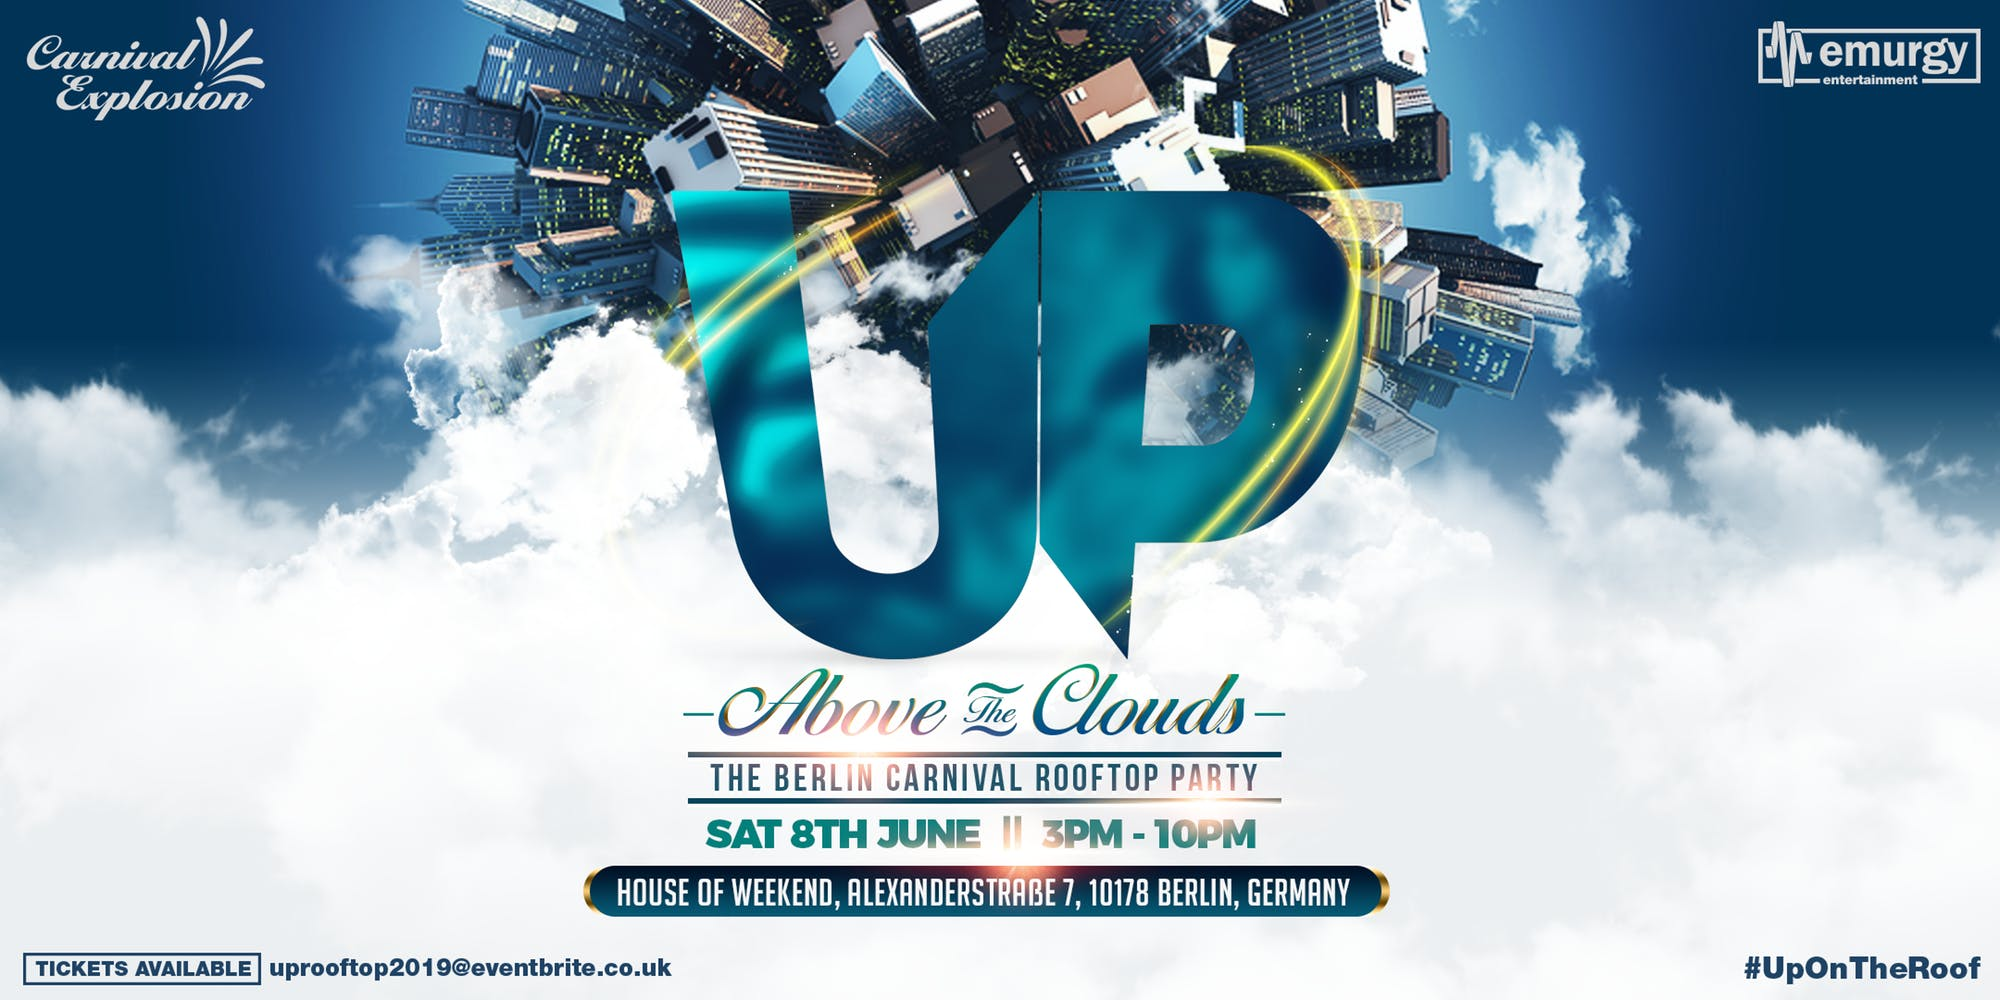 UP Above the Clouds - Carnival Rooftop Party  Let's rise 'Above The Clouds' this year as we head UP to the most exclusive rooftop in Berlin. Get UP and get ready for the only Carnival Rooftop Party in Berlin!!!!  #UpOnTheRoof